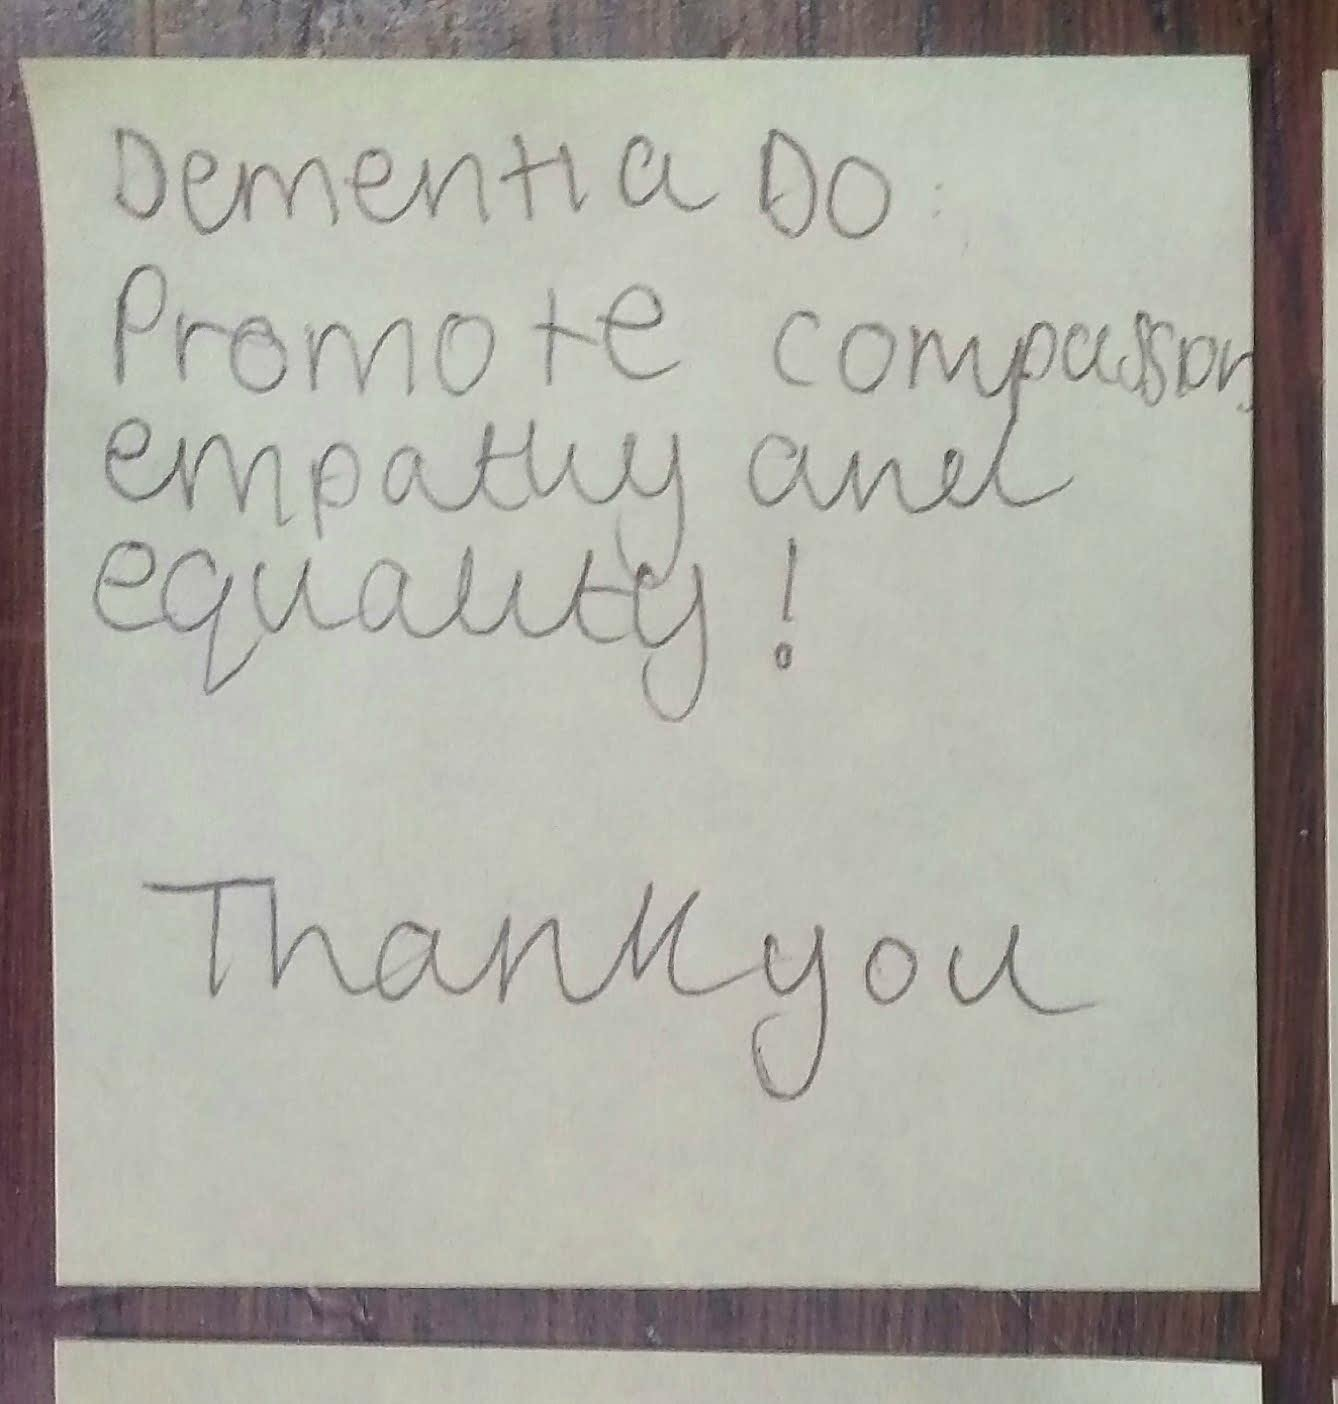 "Today's #dementiado post-it came from @uochester   ""Promote compassion, empathy & equality! Thank you""  No, thank you! 😀  #FabChangeDay https://t.co/3HorcSNXoQ"